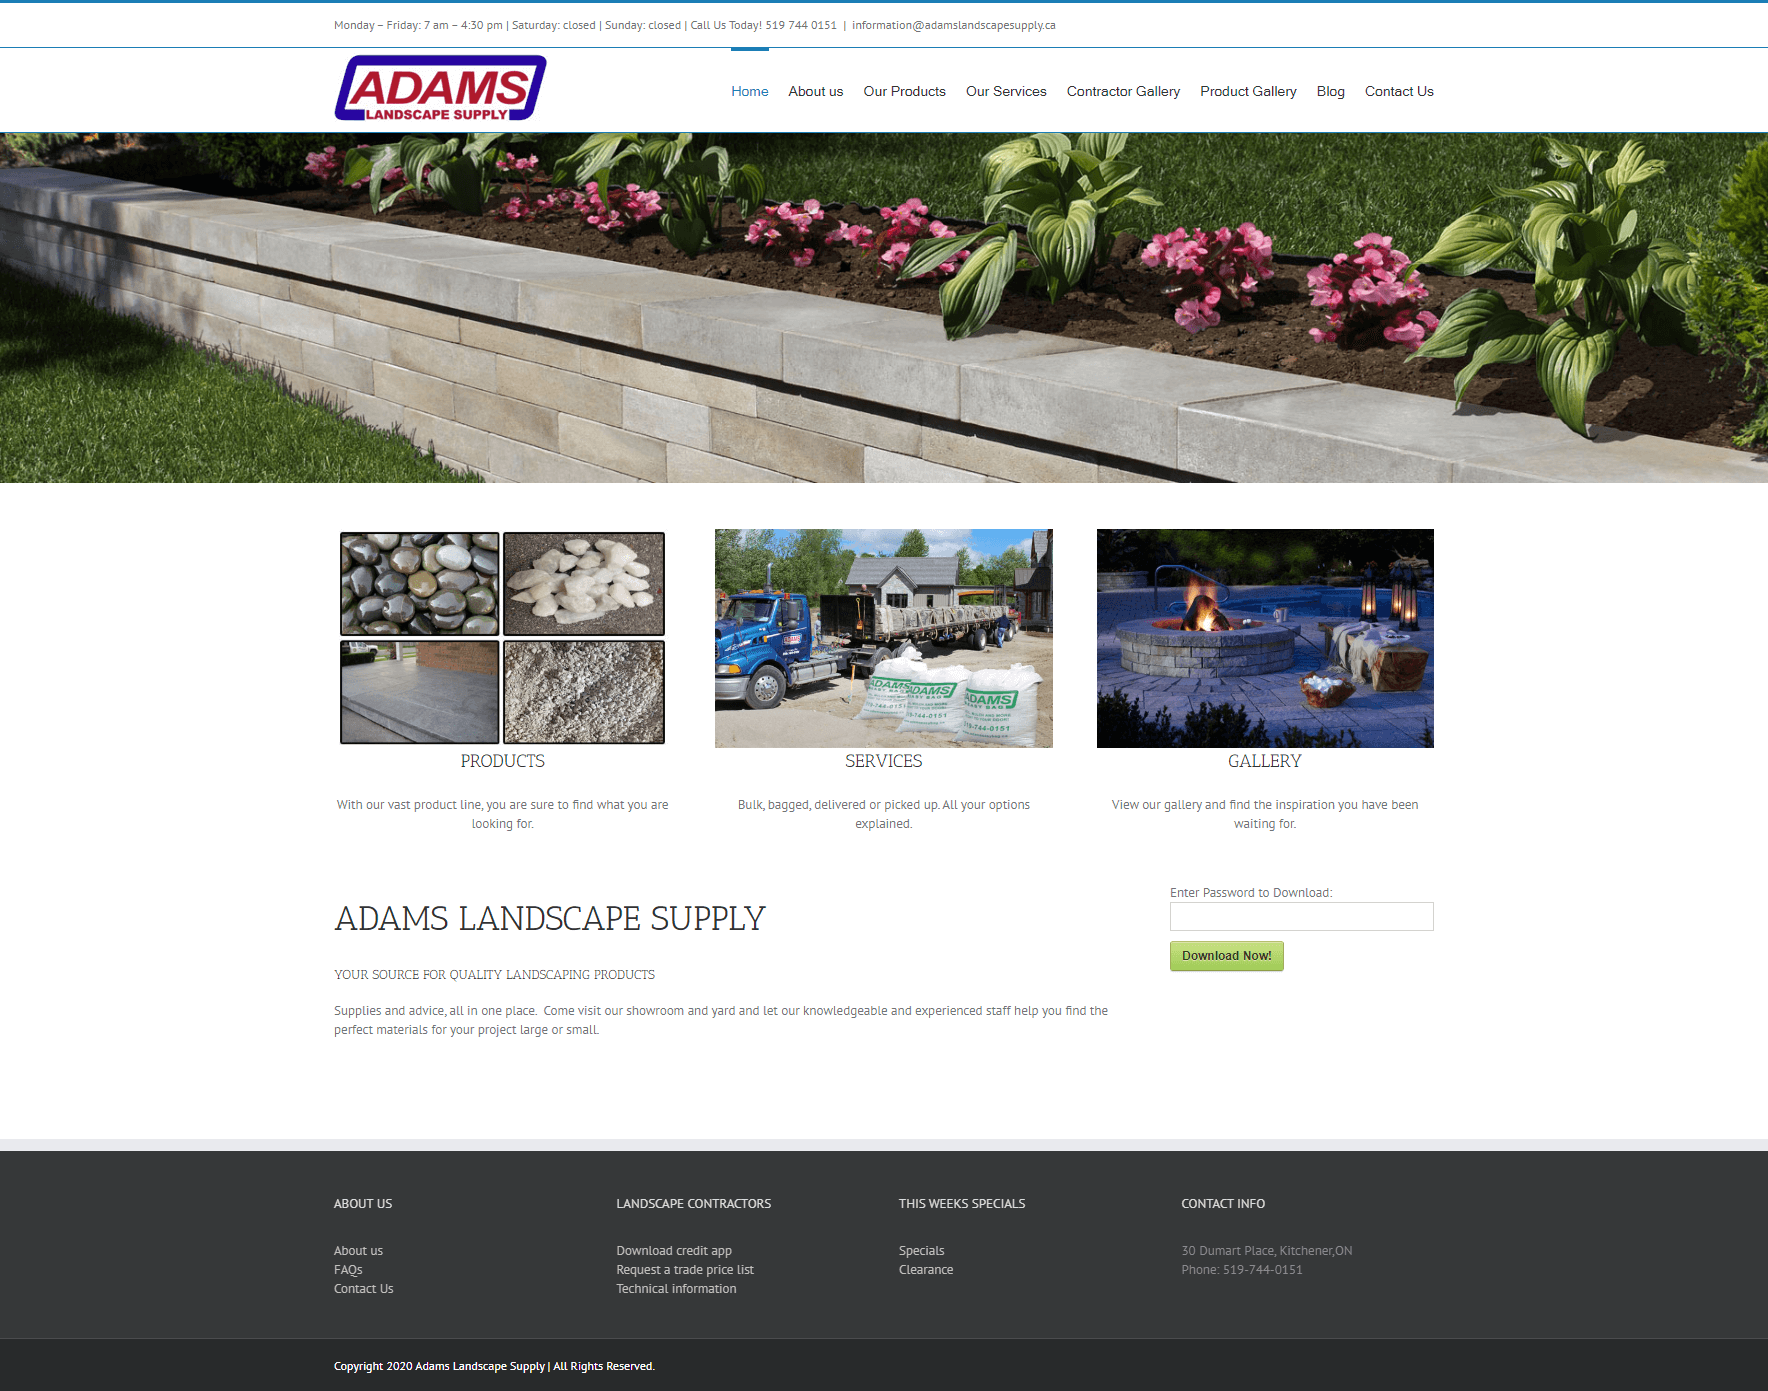 ADAMS LANDSCAPE SUPPLY